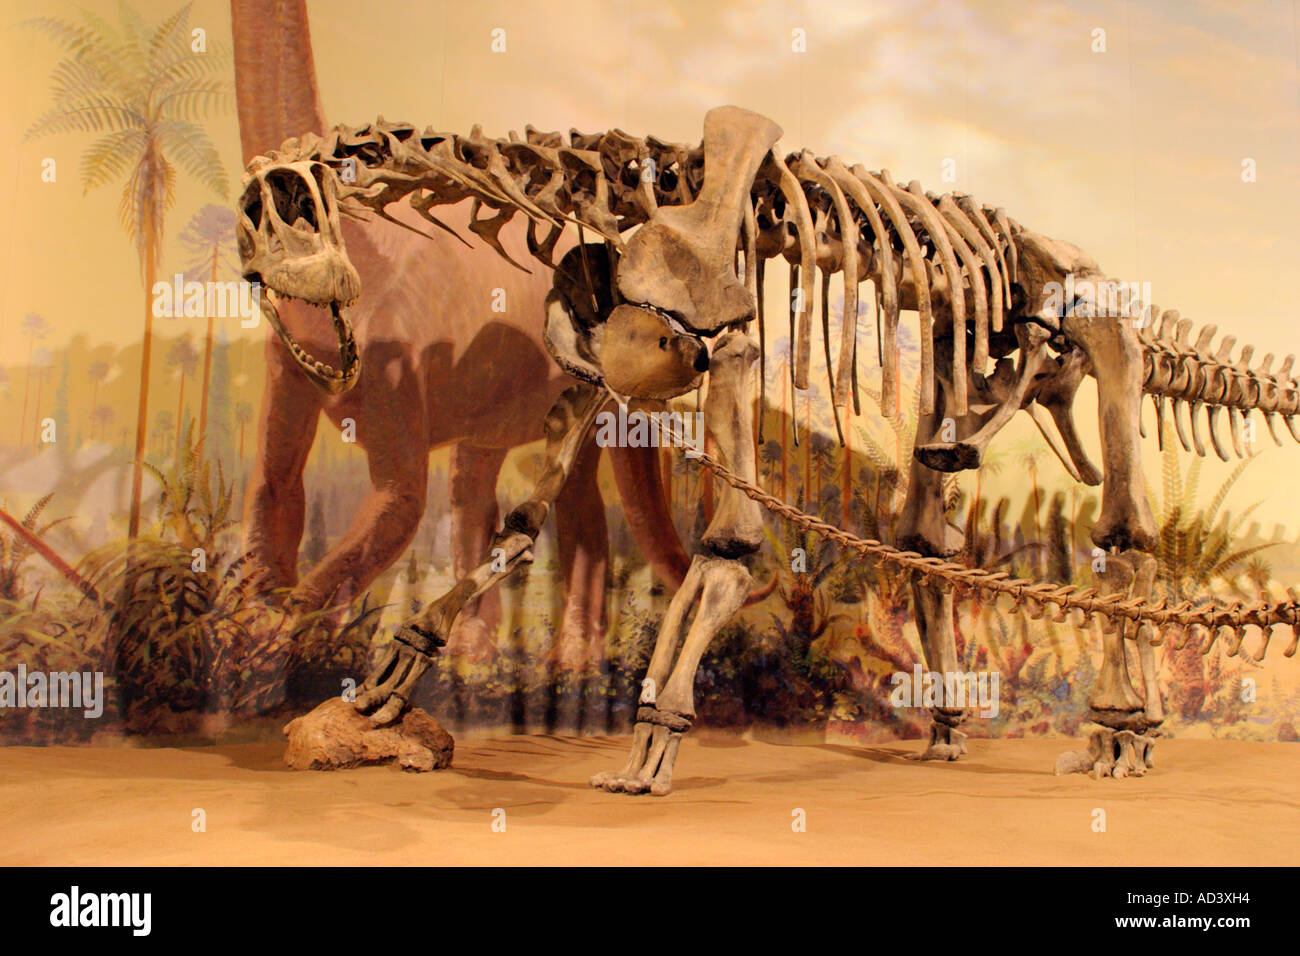 Lifesize replica of skeletal structure of Camarasaurus dinosaur from Royal Tyrrell Museum, Drumheller, Alberta, Canada. - Stock Image